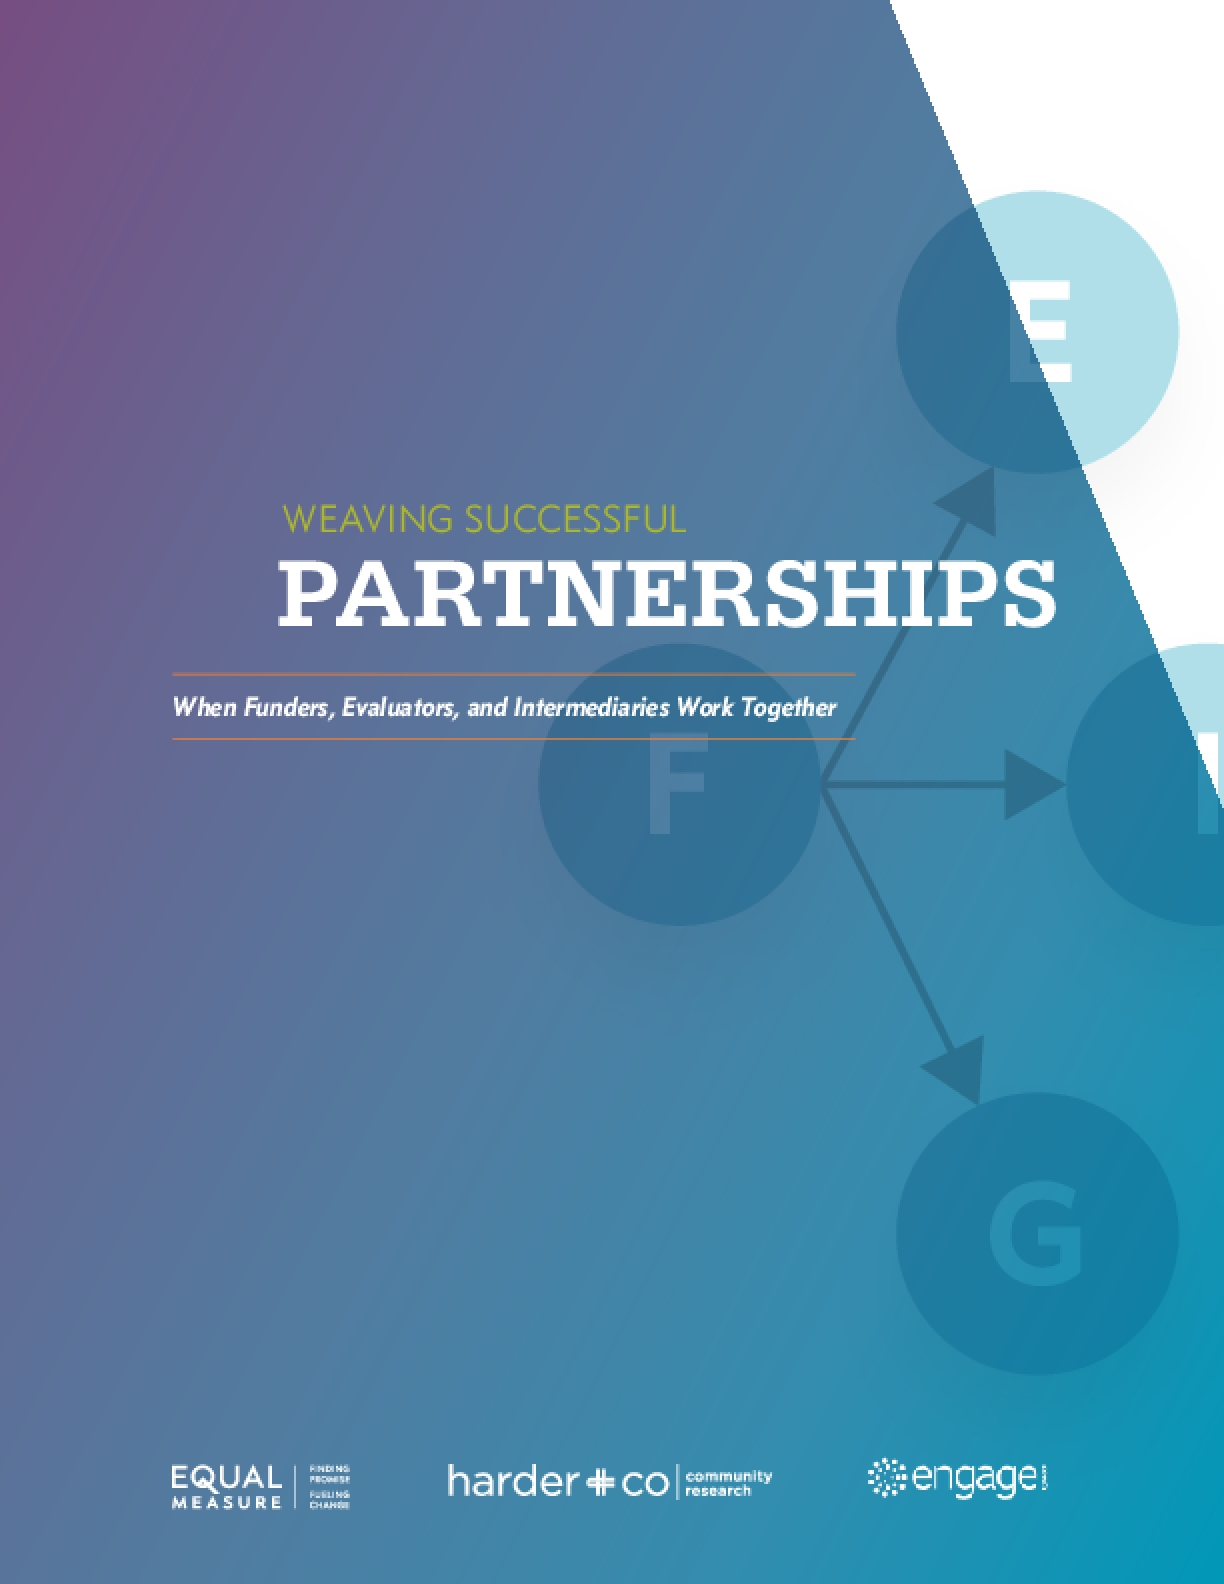 Weaving Successful Partnerships: When Funders, Evaluators, and Intermediaries Work Together